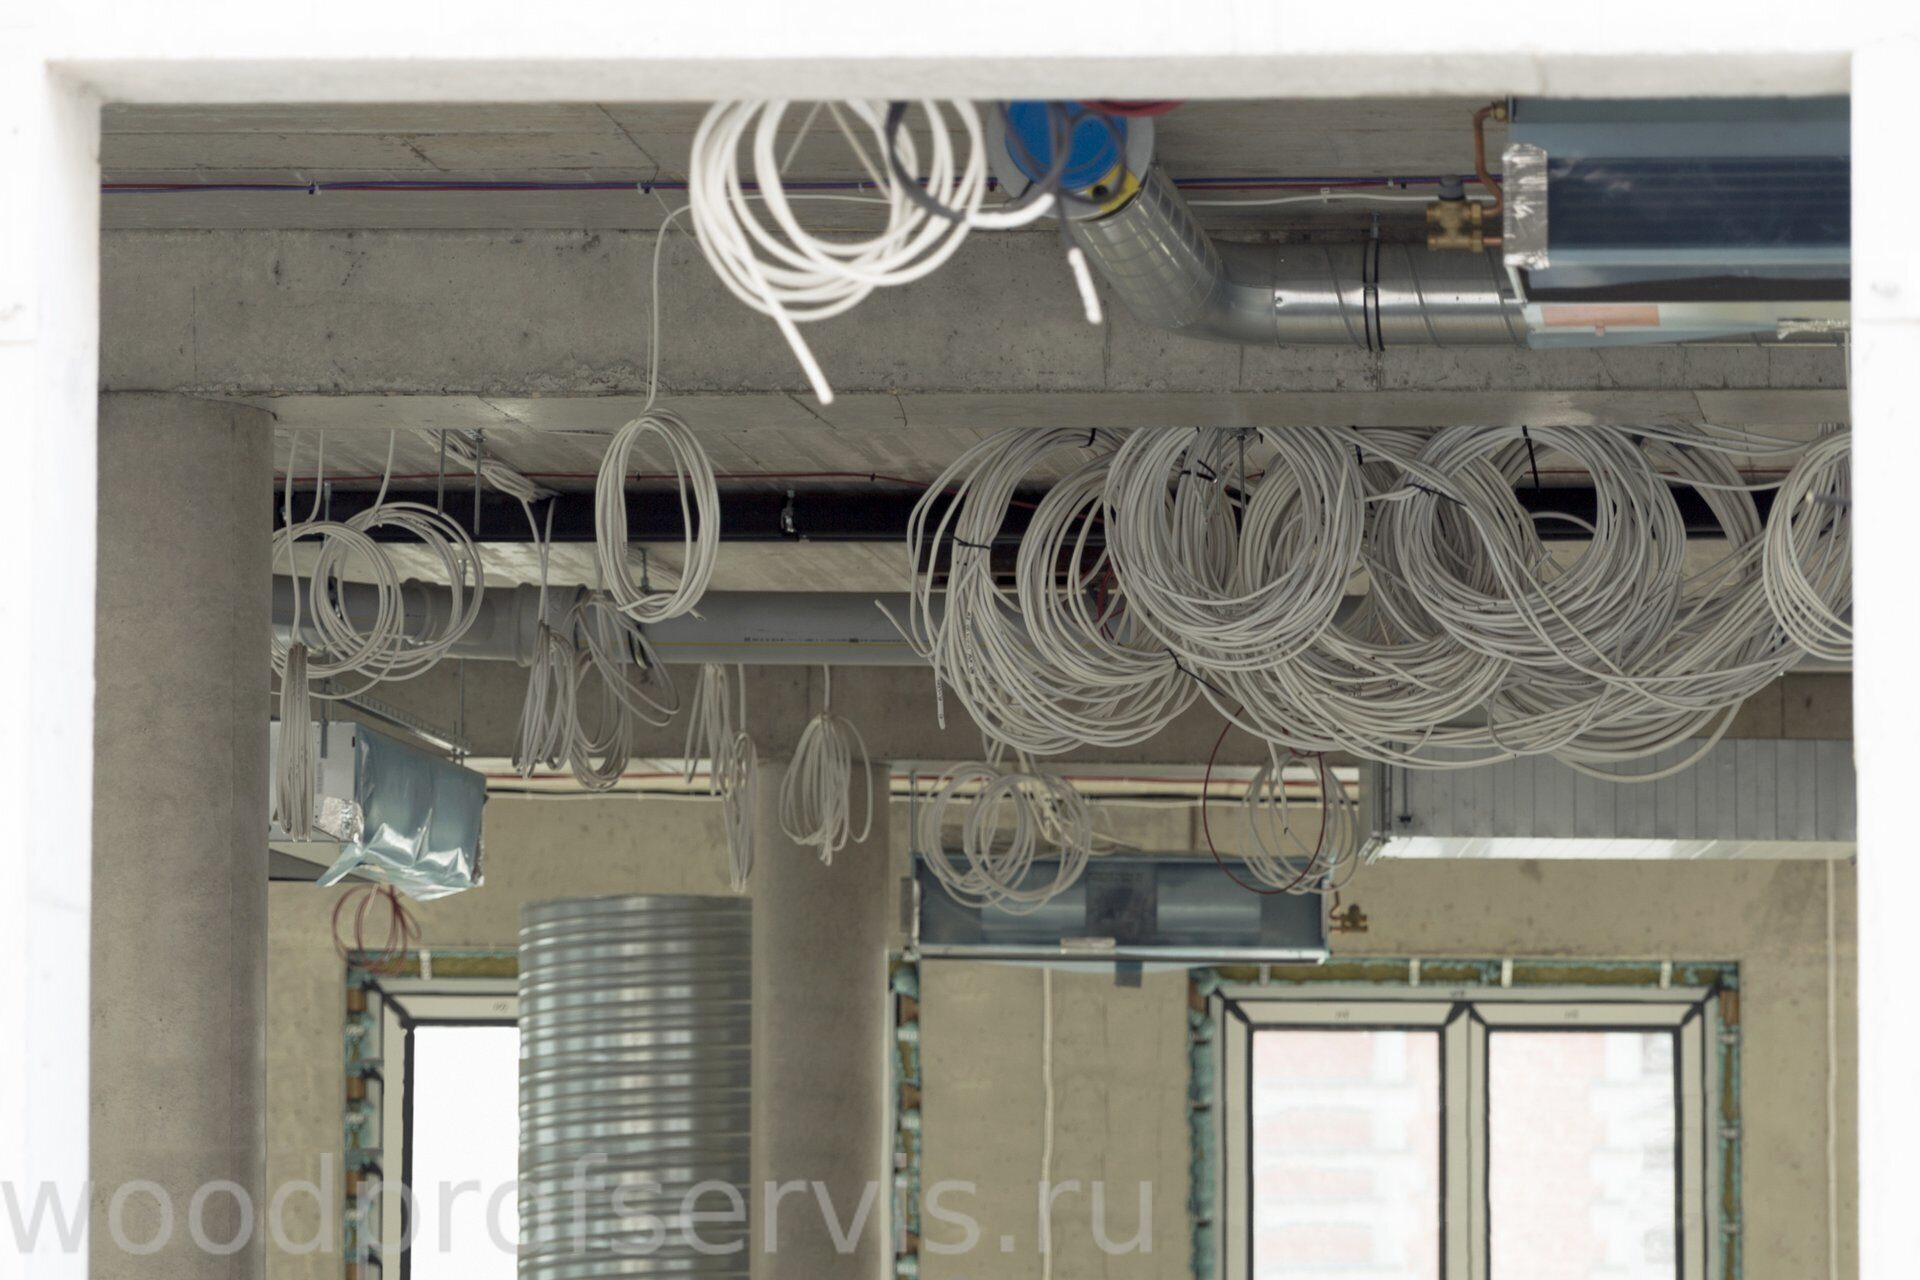 Interior construction site. Cabling and wiring of new office place